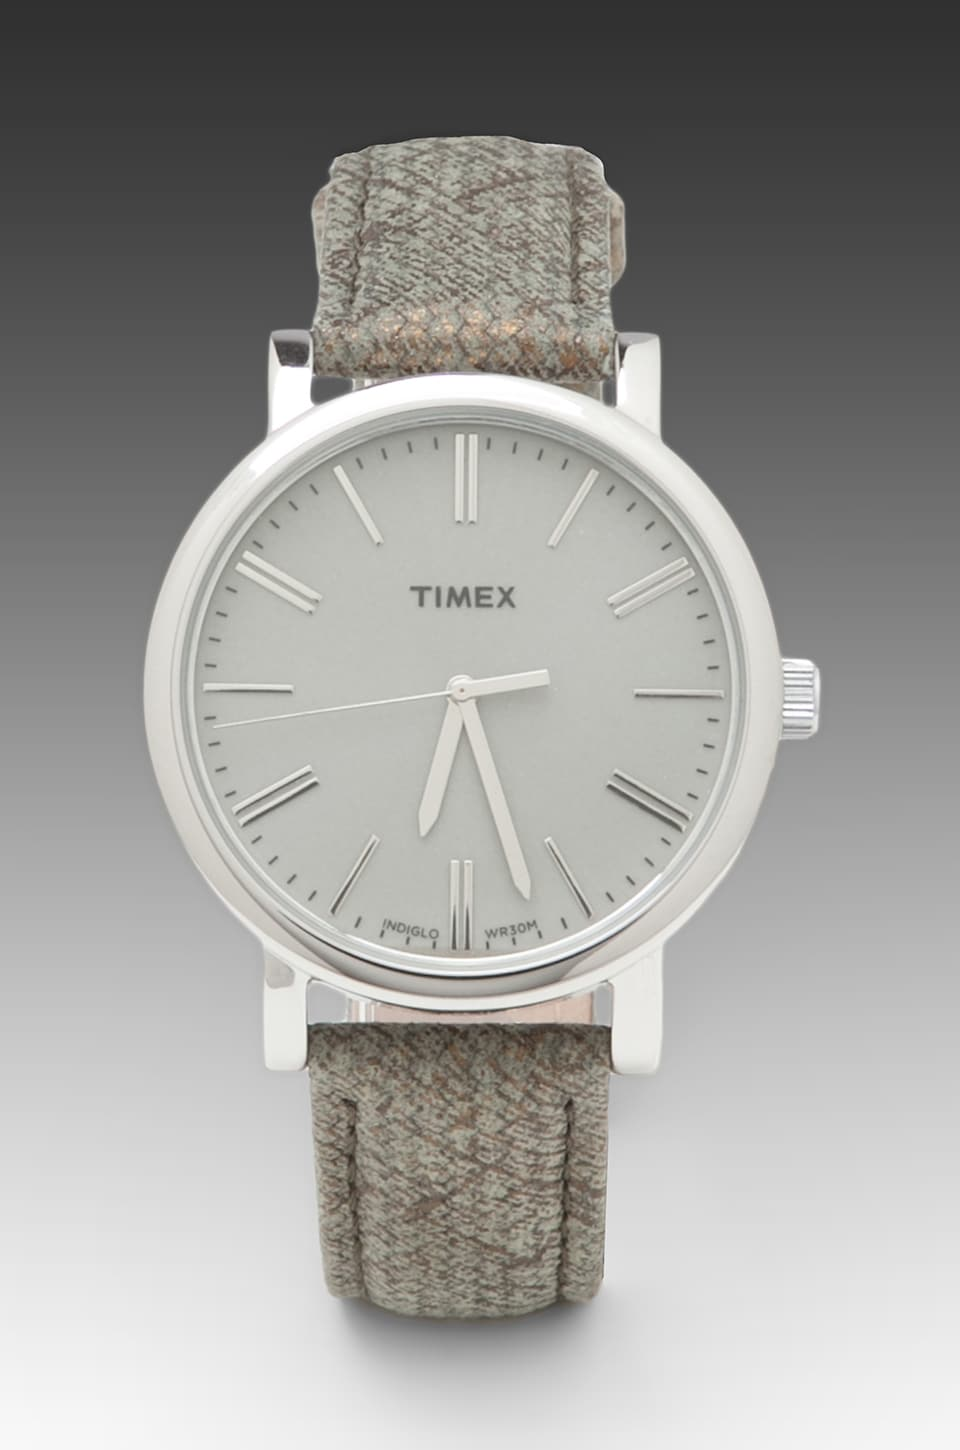 Timex Originals Classic Round Watch with Braided Strap in Silvertone/ Sage Grey